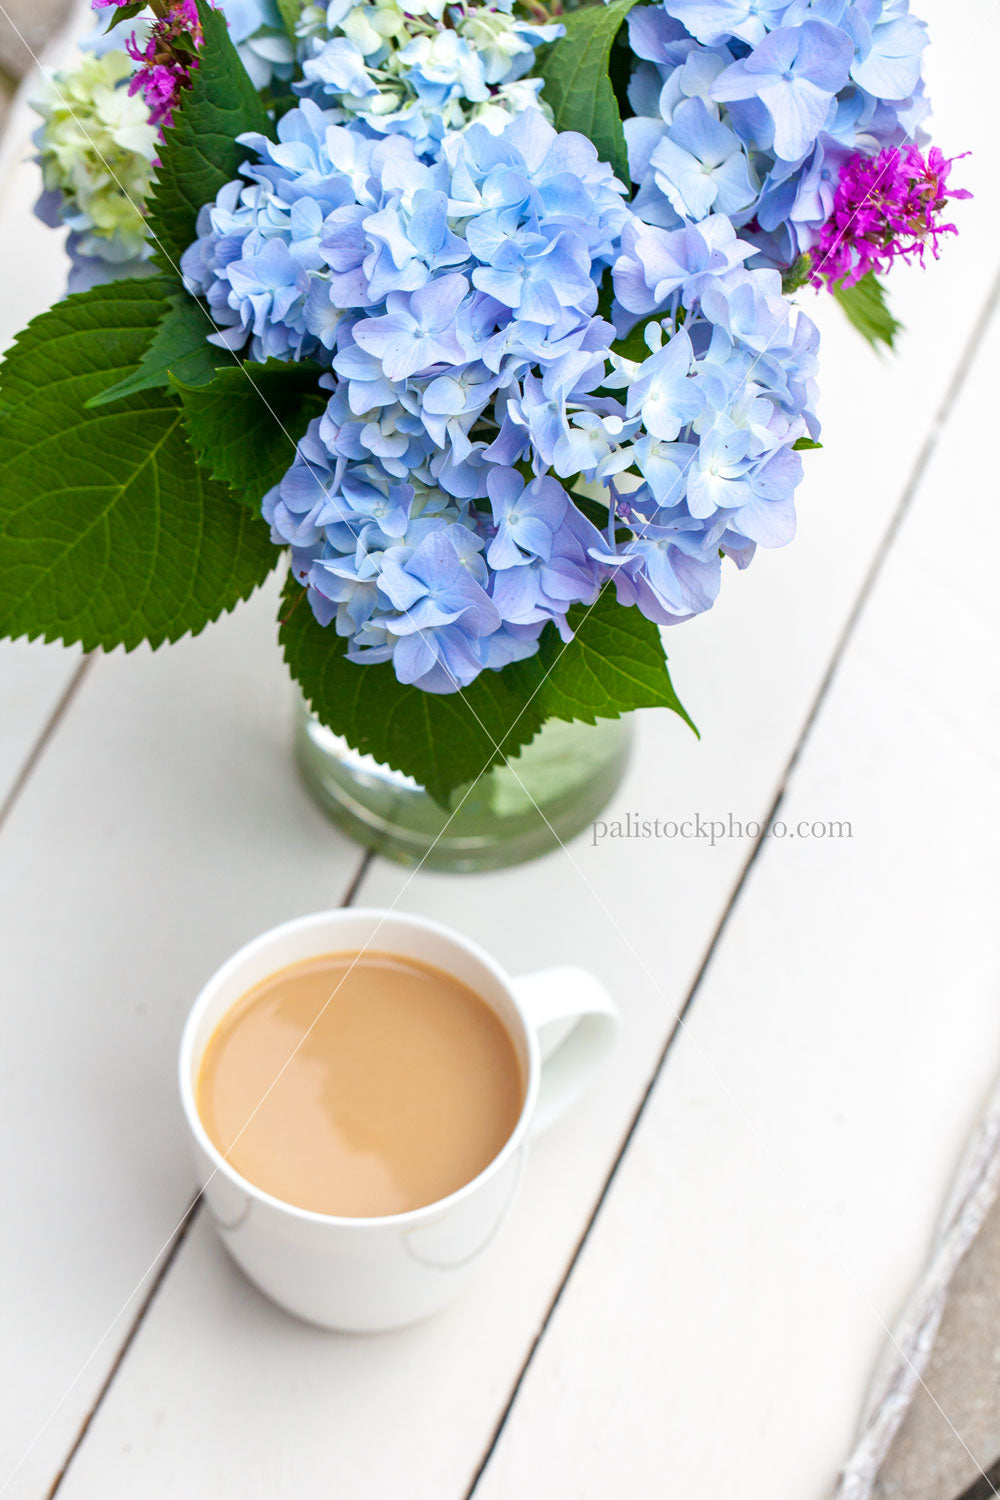 Coffee and blue hydrangeas